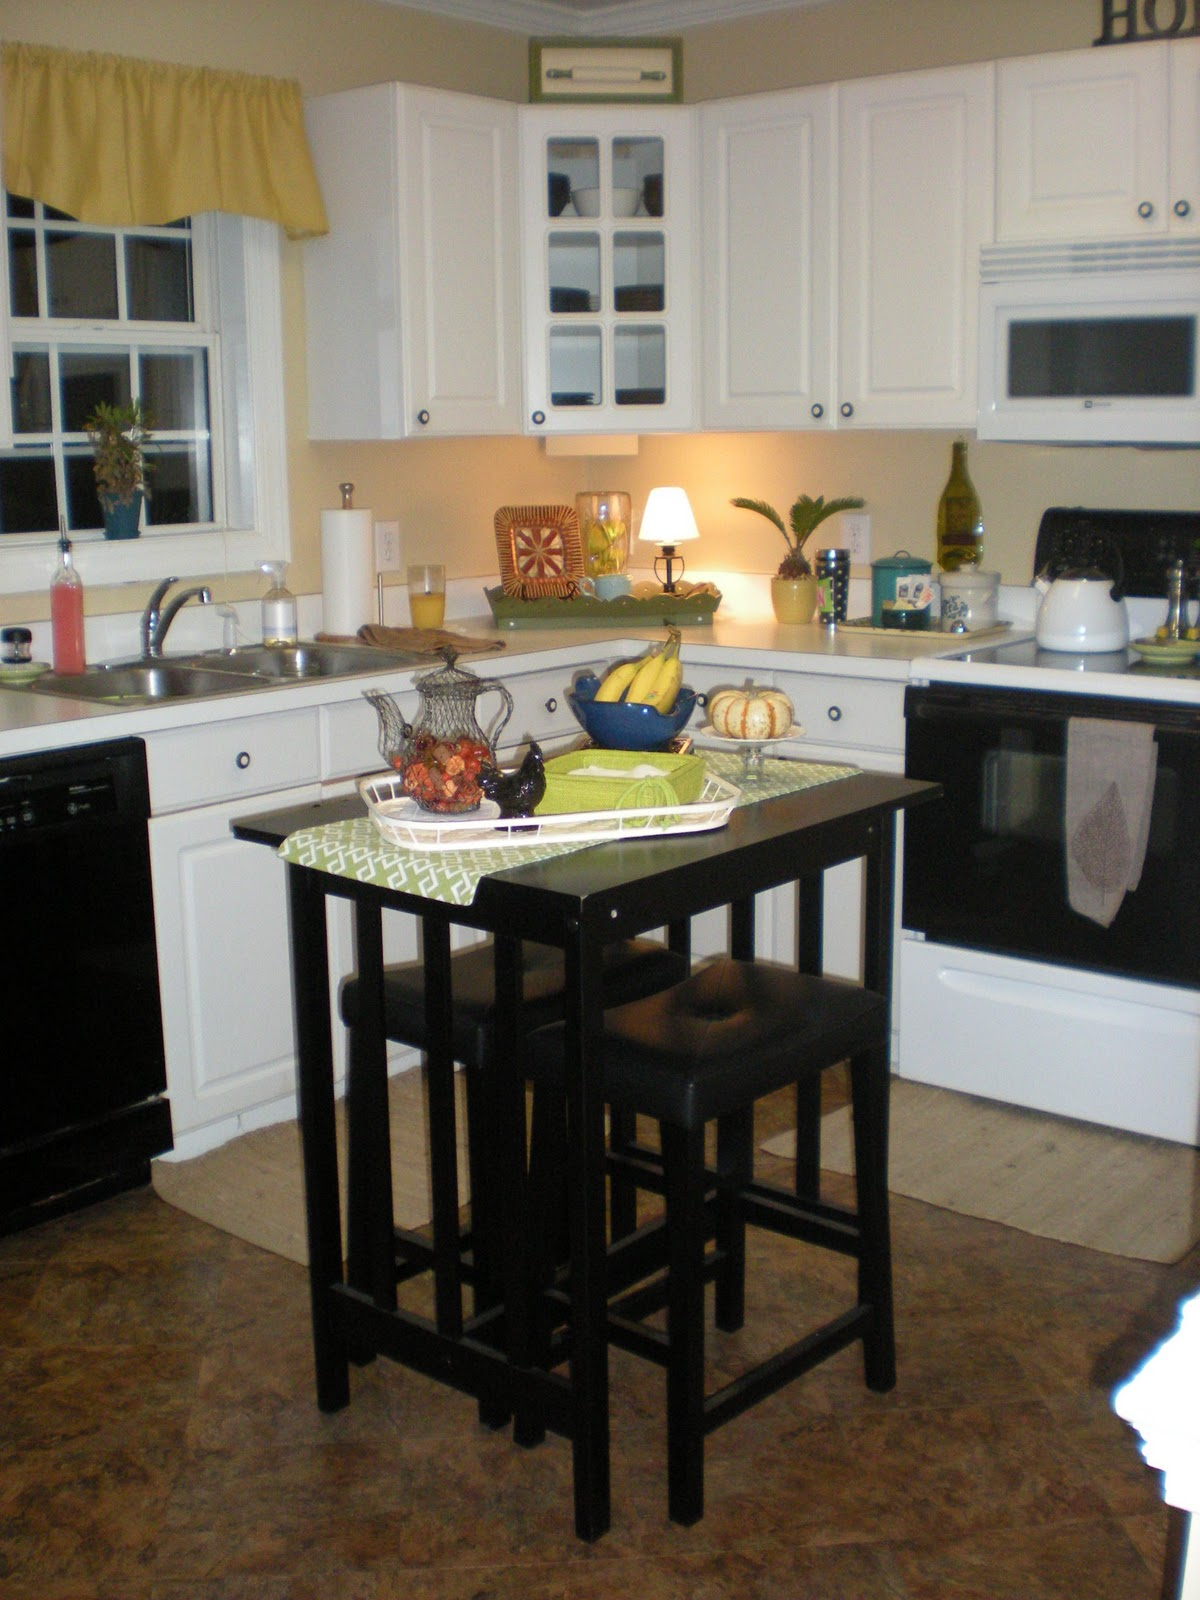 design your own kitchen island replacing sink sprayer hose thrifty finds and redesigns create